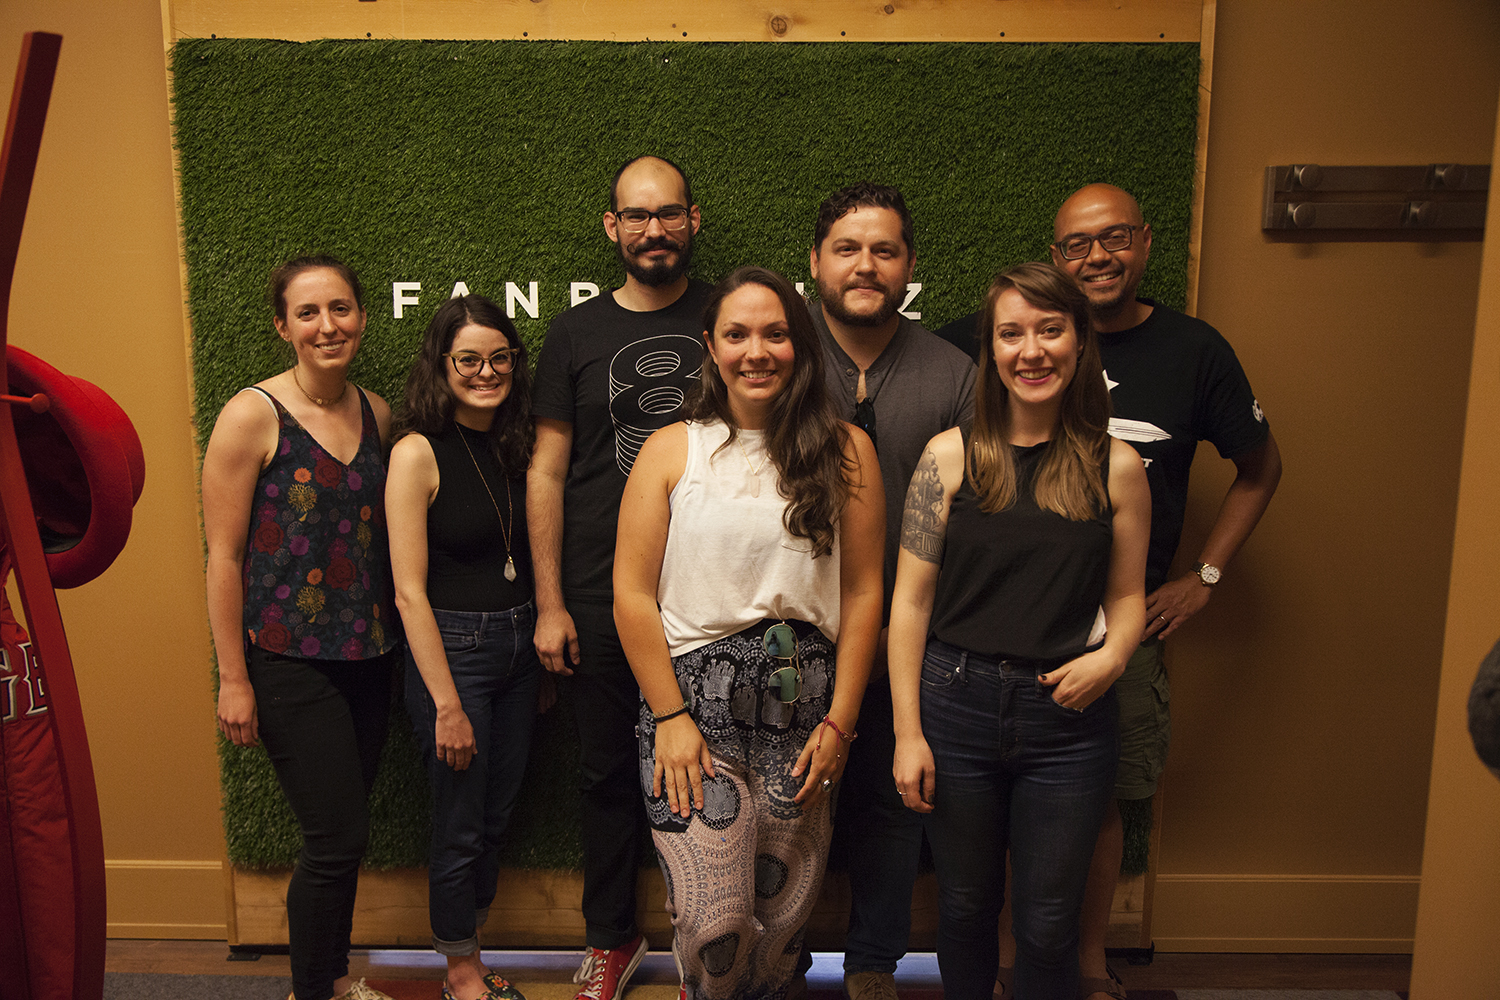 The team: (from left to right) Sara Douma, Jeanette Pidi, Mike Sulick (host), Samantha Roth, Kevin Greene, Beth Fileti, and Anthony Inciong. All session photography courtesy of Joe Piccirilli.